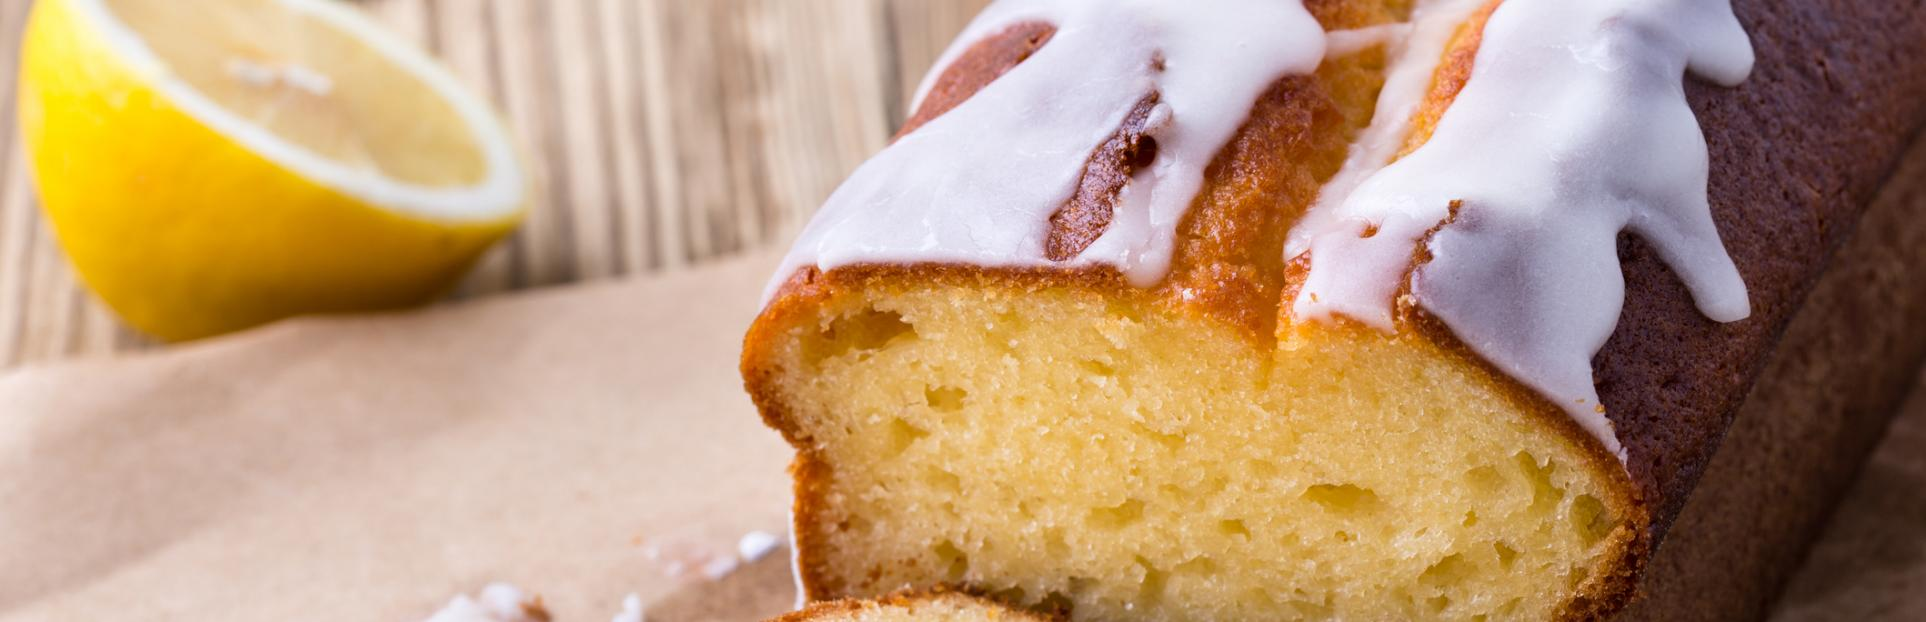 an image of a lemon loaf cake with white icing on top